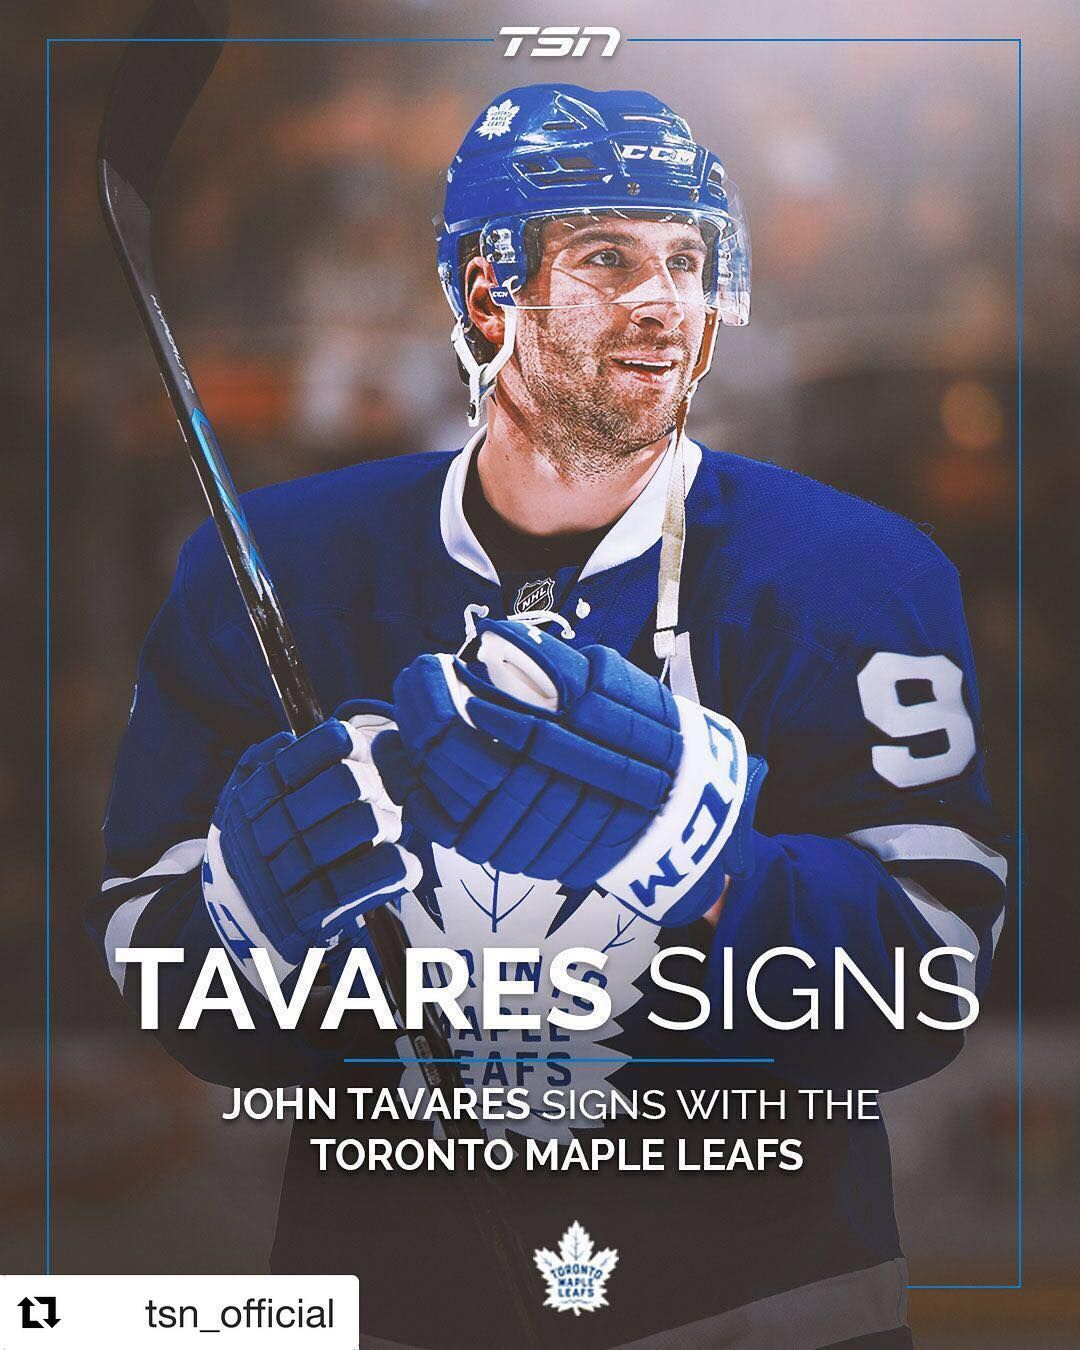 new products a49d0 a5202 It's official John Tavares is coming home!! He's a Maple ...